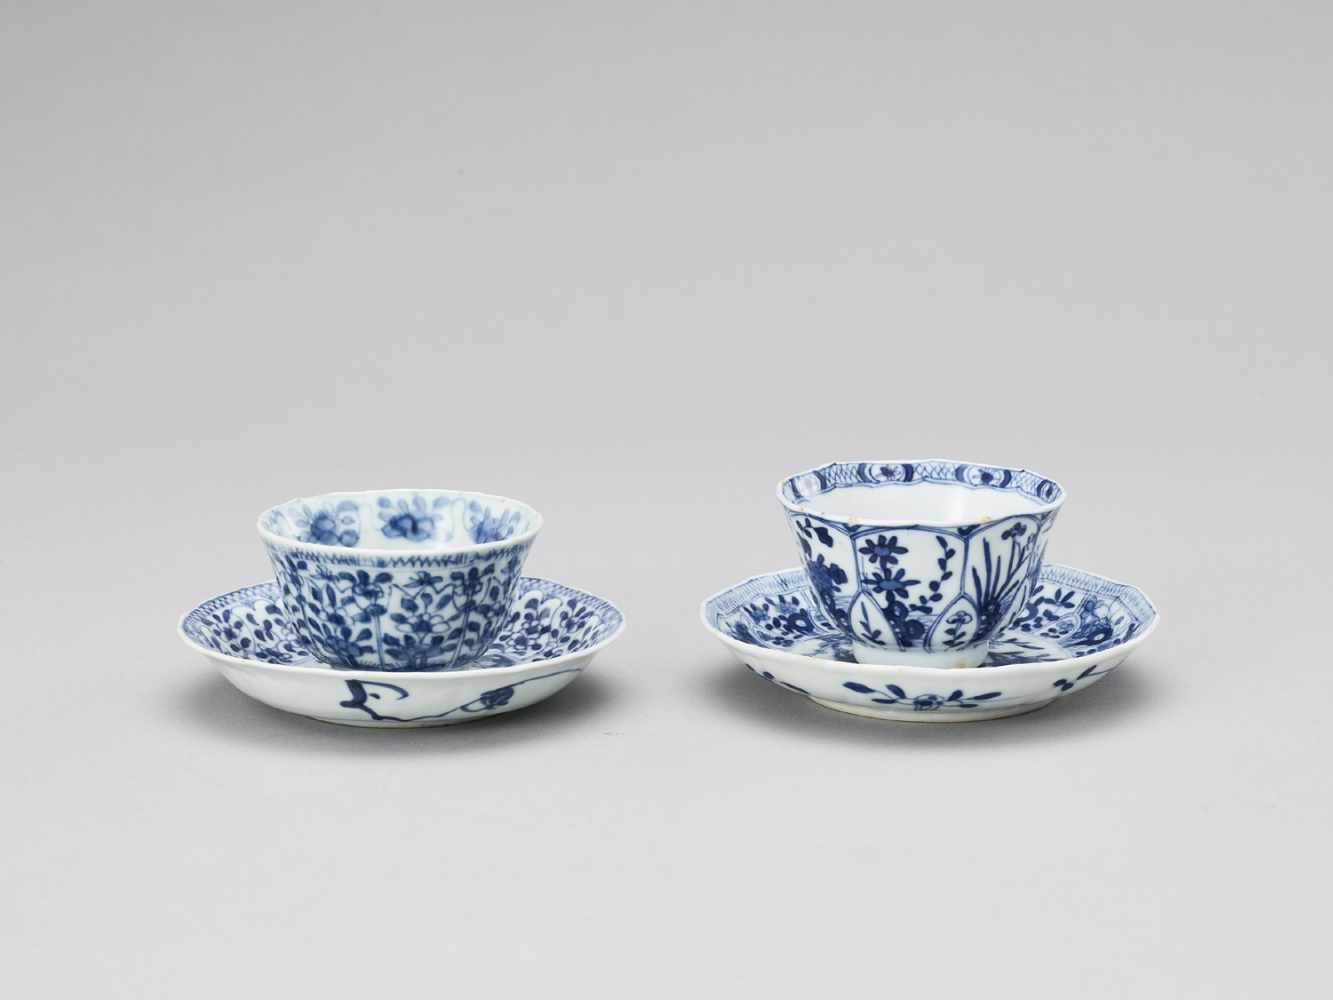 A PAIR OF BLUE AND WHITE PORCELAIN CUPS WITH MATCHING PLATES, KANGXI - Bild 3 aus 9